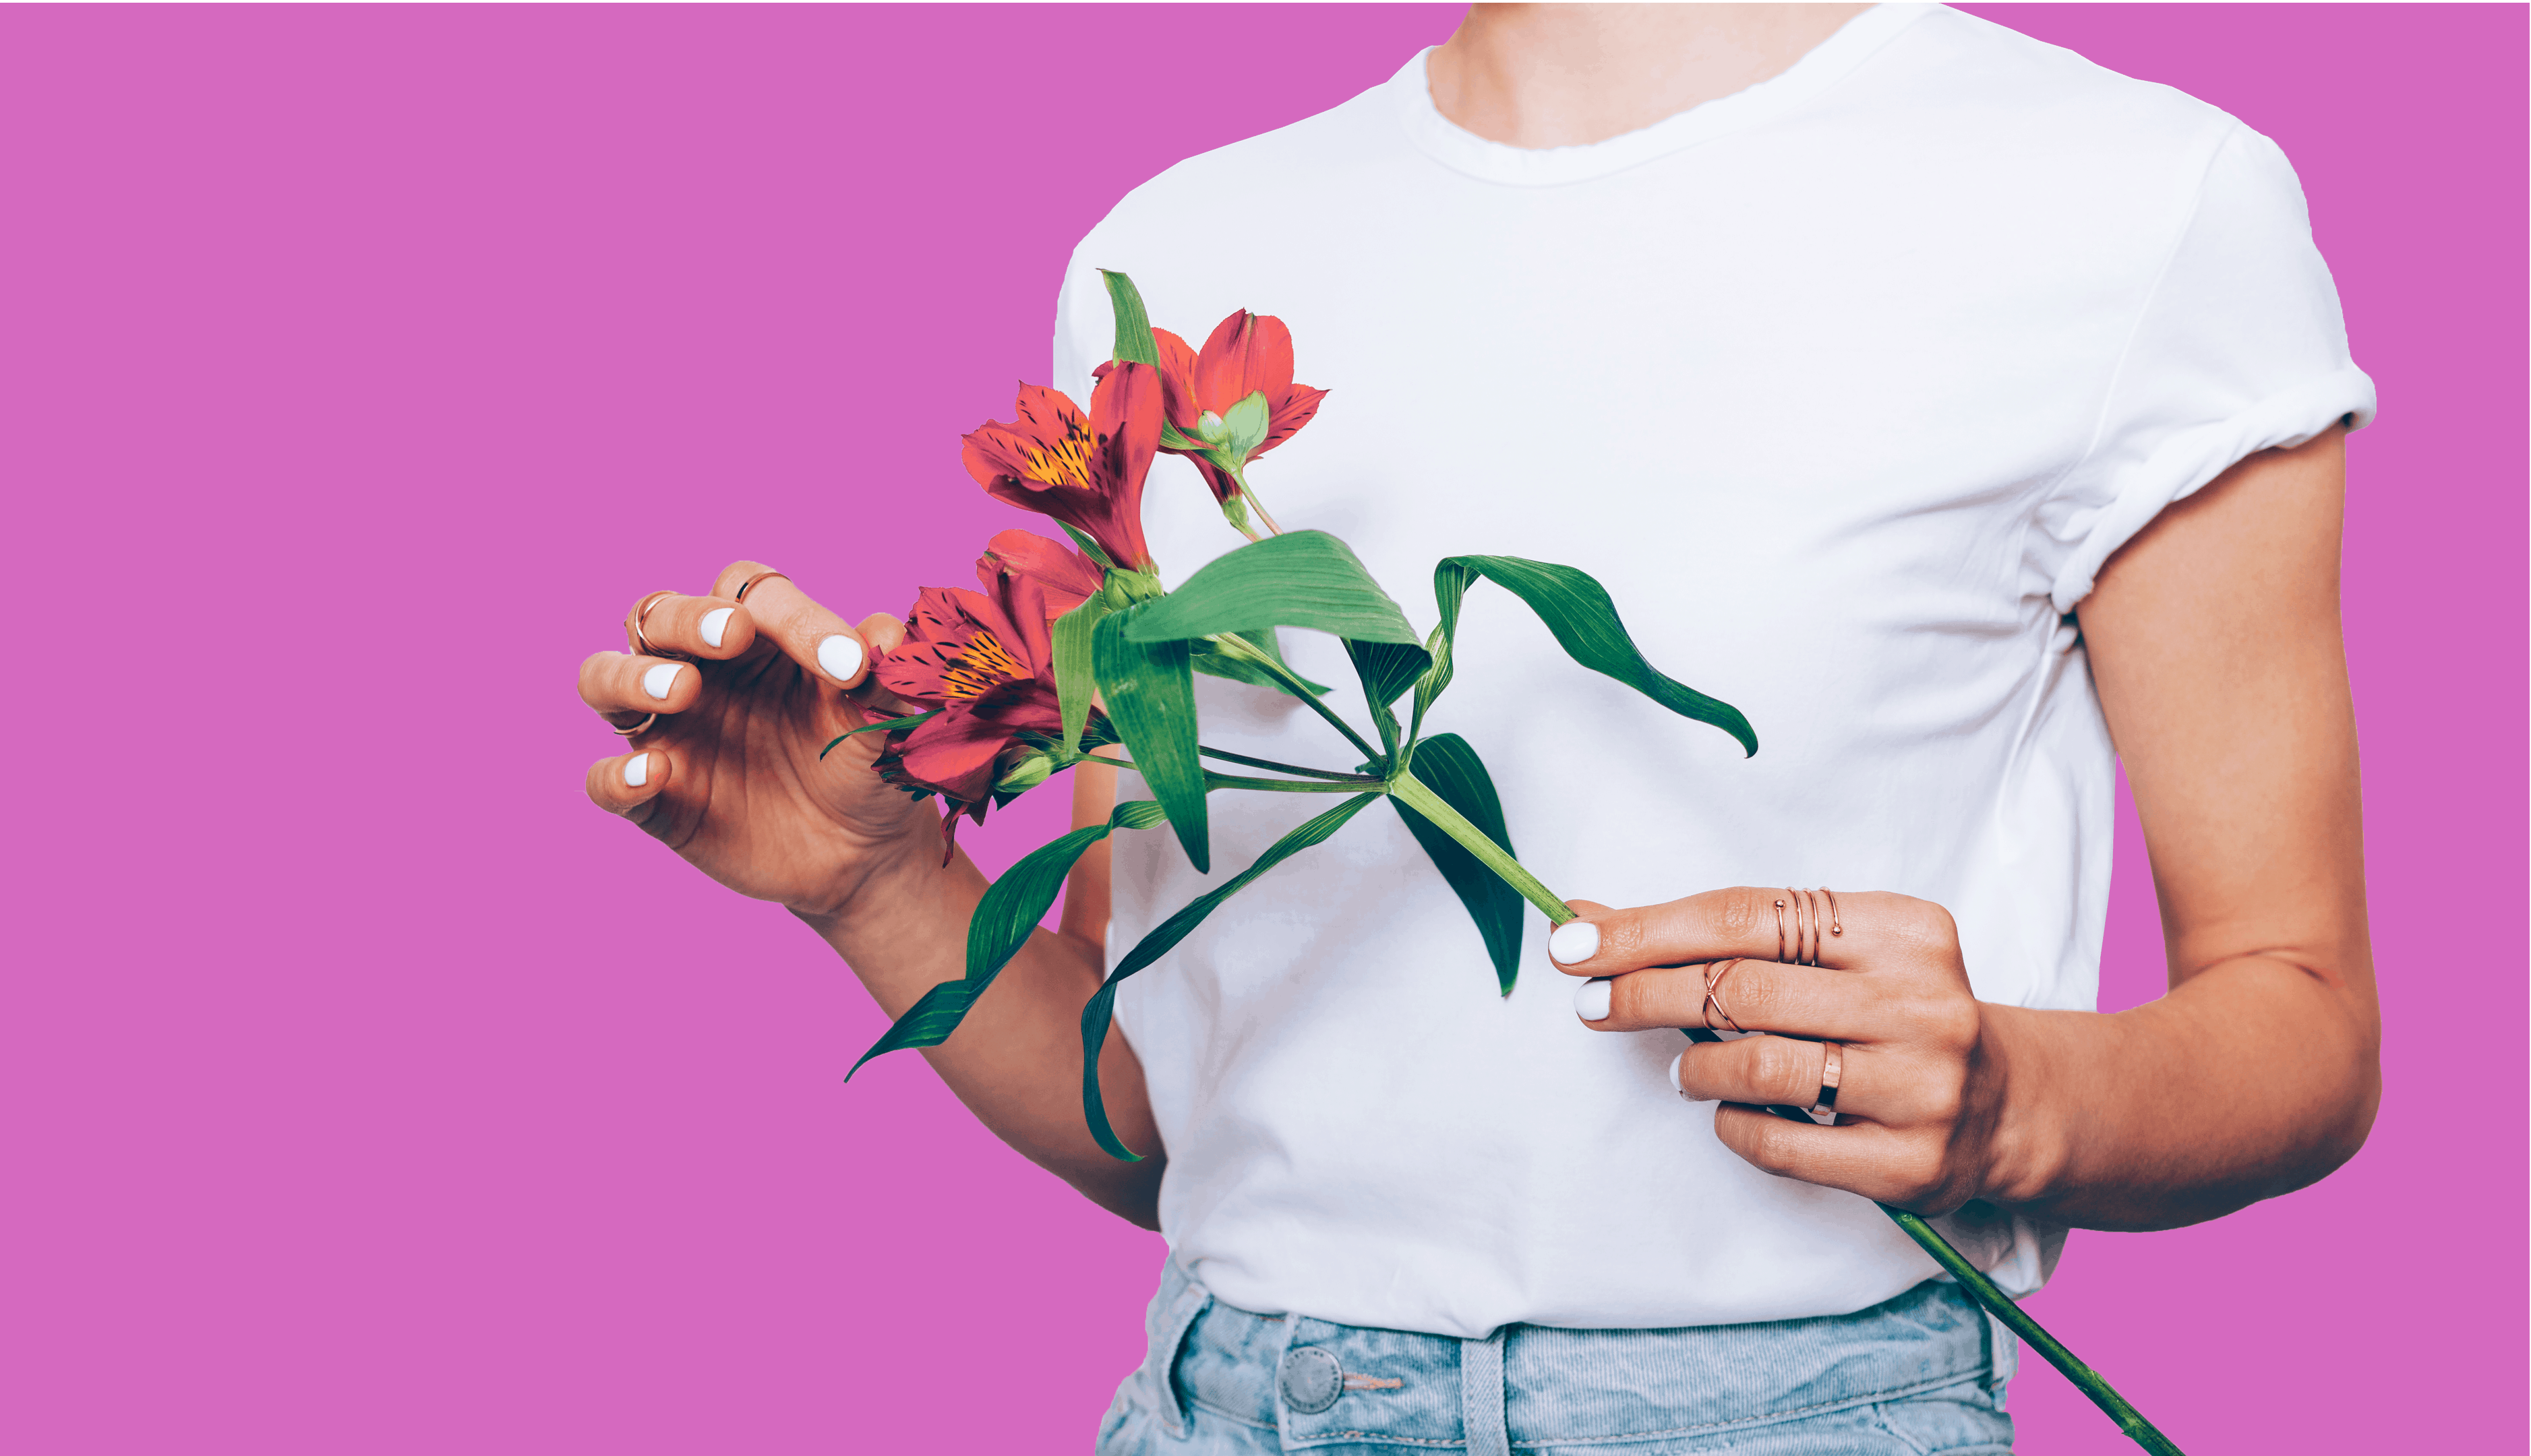 Title: Spring is Here … and So Are Allergies Graphic: pink background with millennial person holding flowers